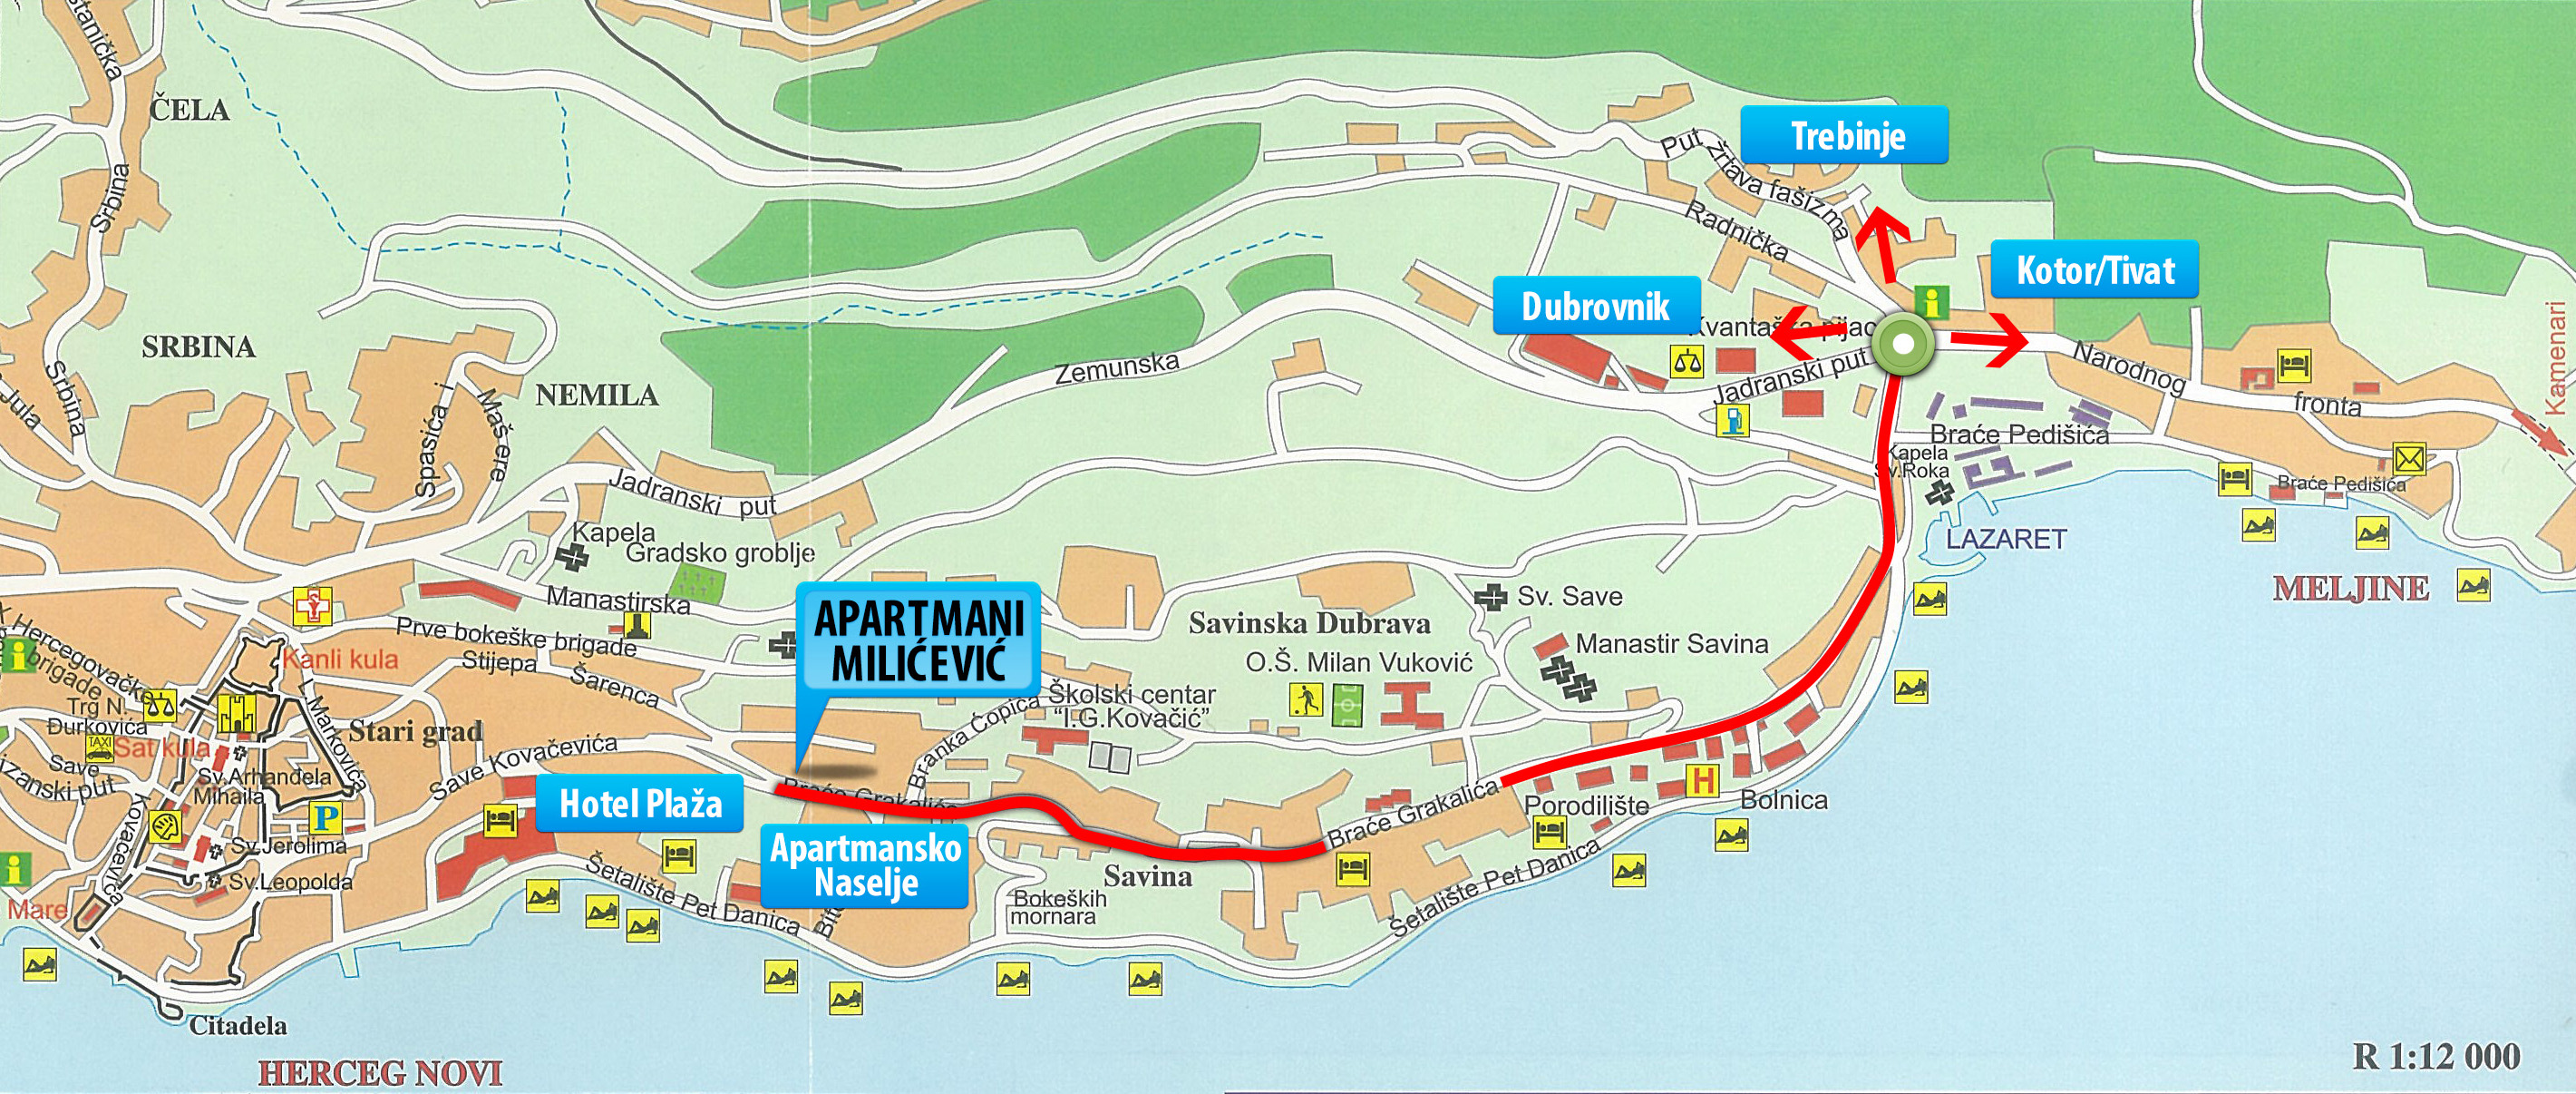 Herceg Novi Montenegro City Or Destination Online Map Town